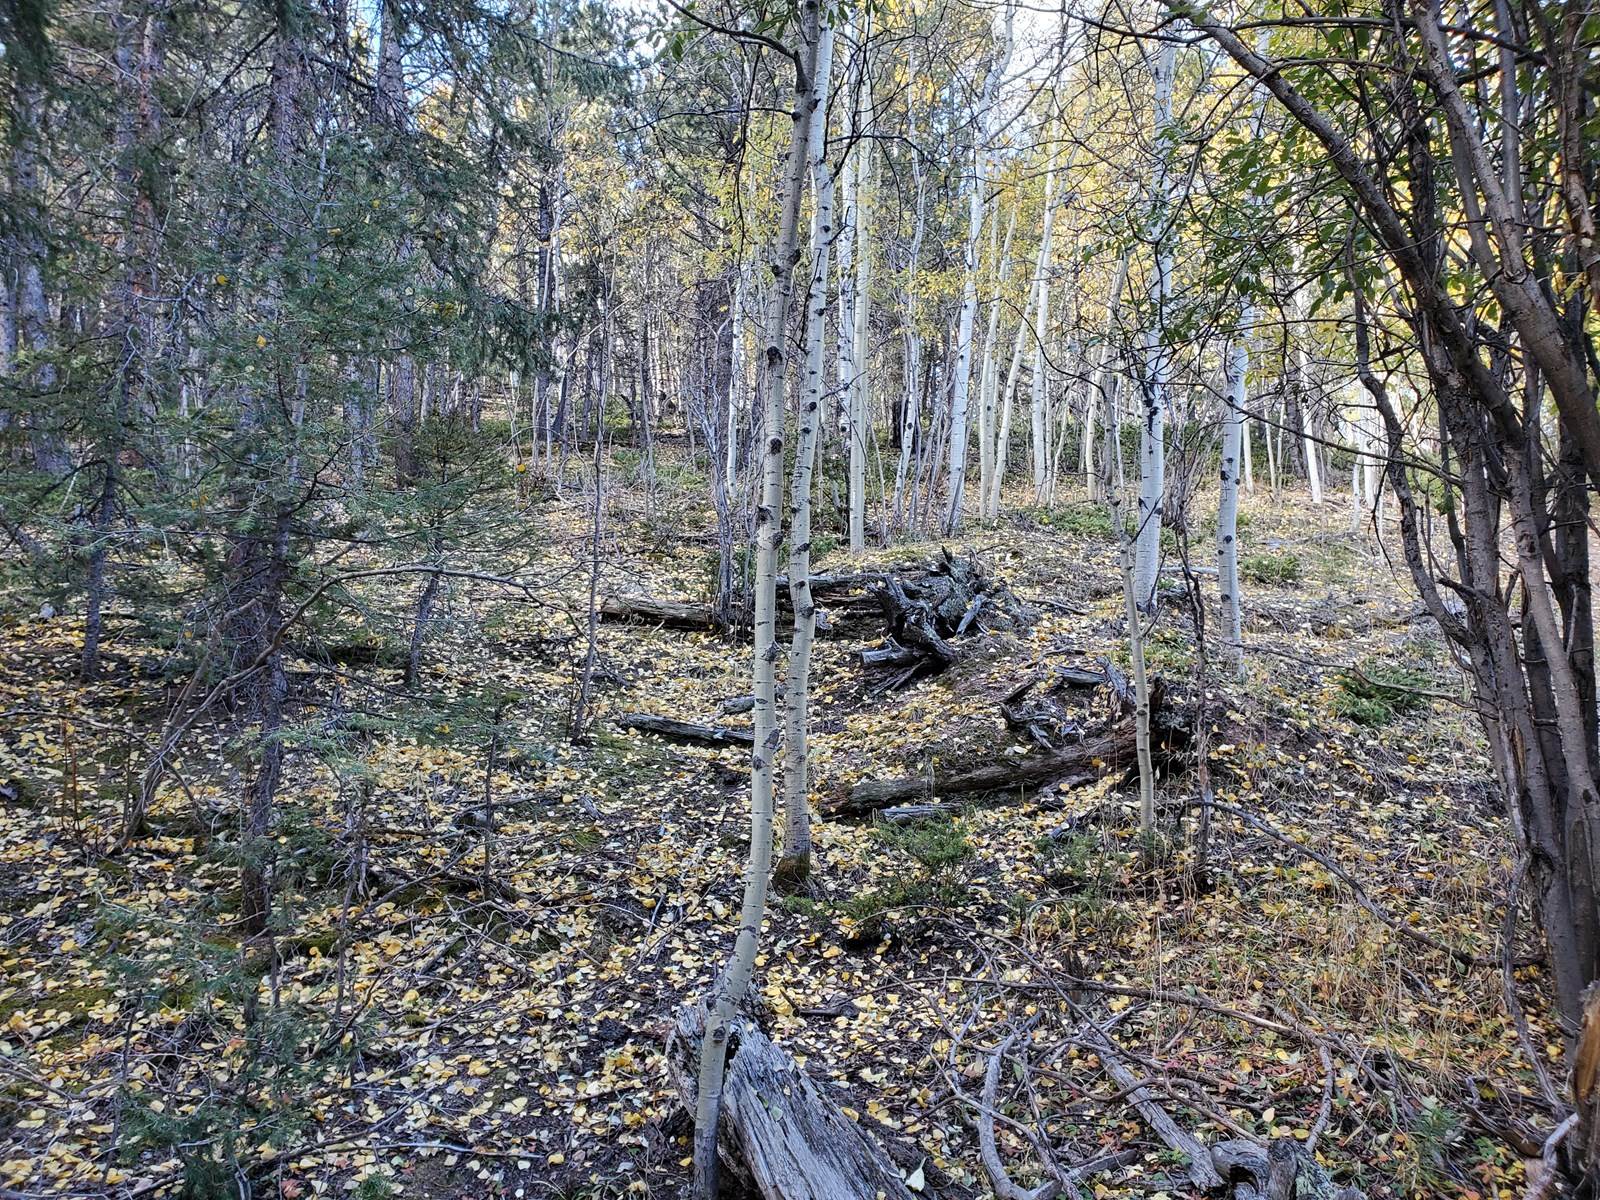 Vacant land Wooded Teller County CO State Parks  Hiking